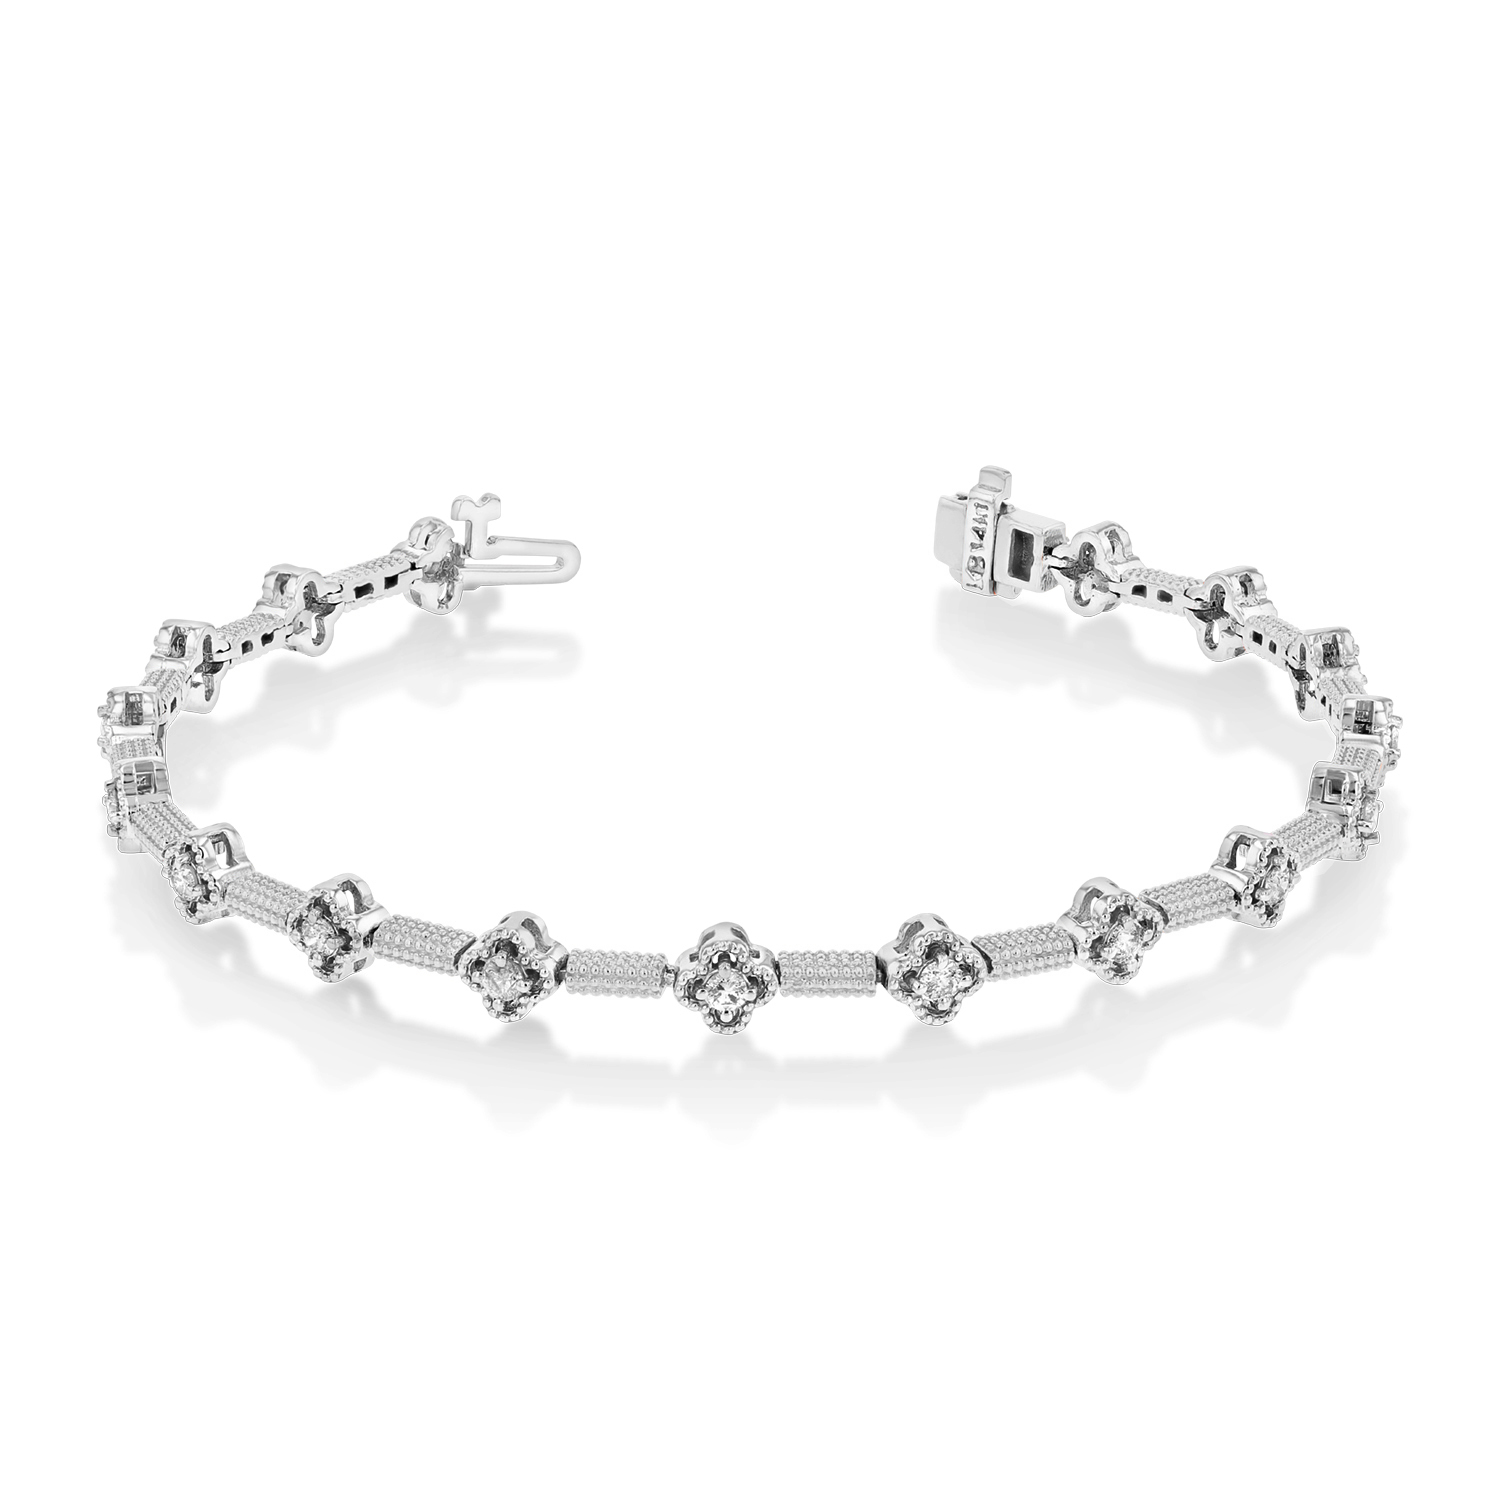 View 0.75ctw Diamond Bracelet in 14k WG